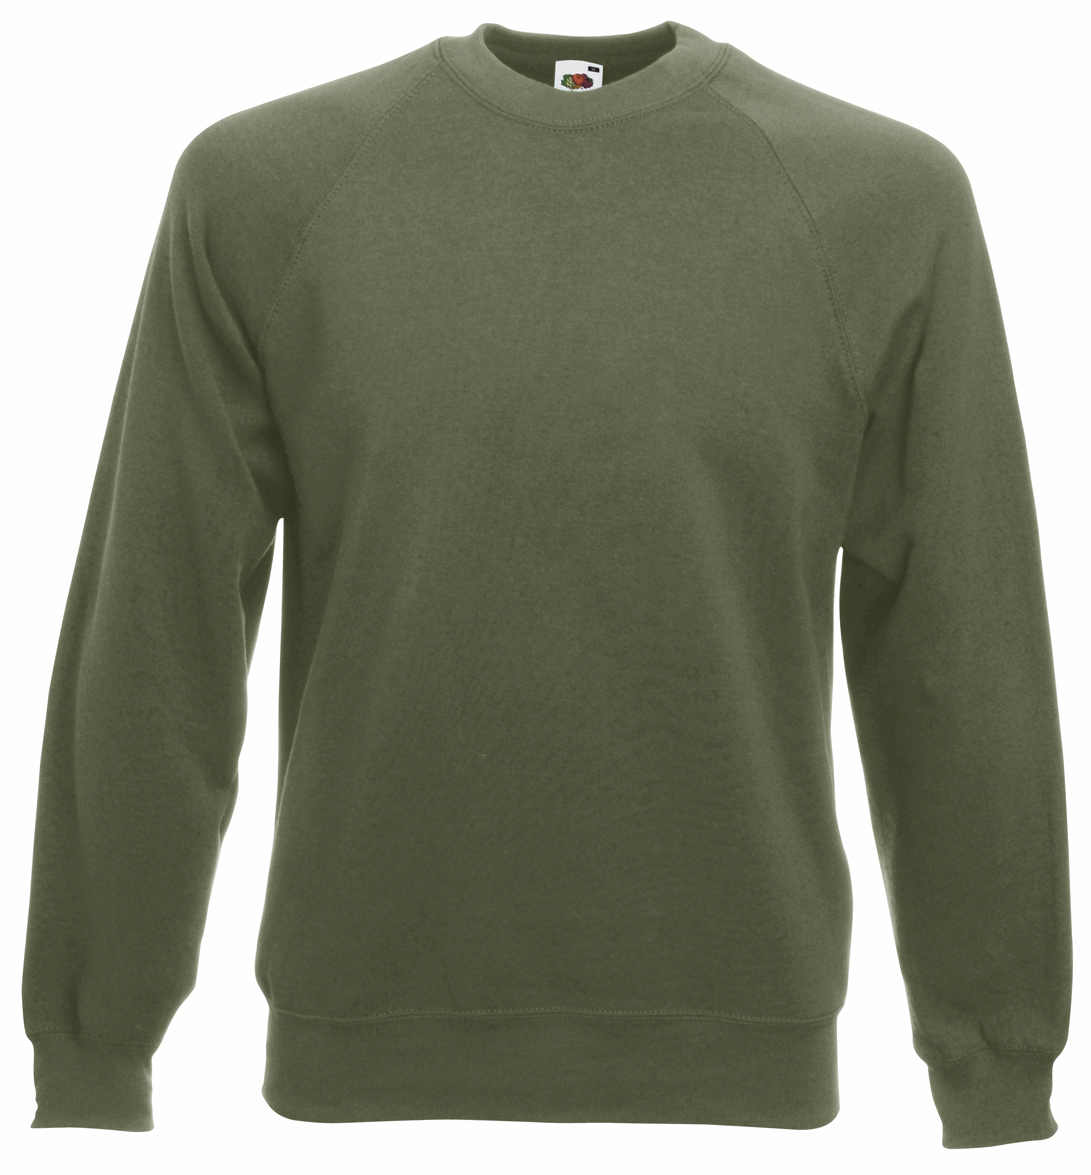 Fruit of the Loom Raglan Sweater FotL 622160 Classic Olive